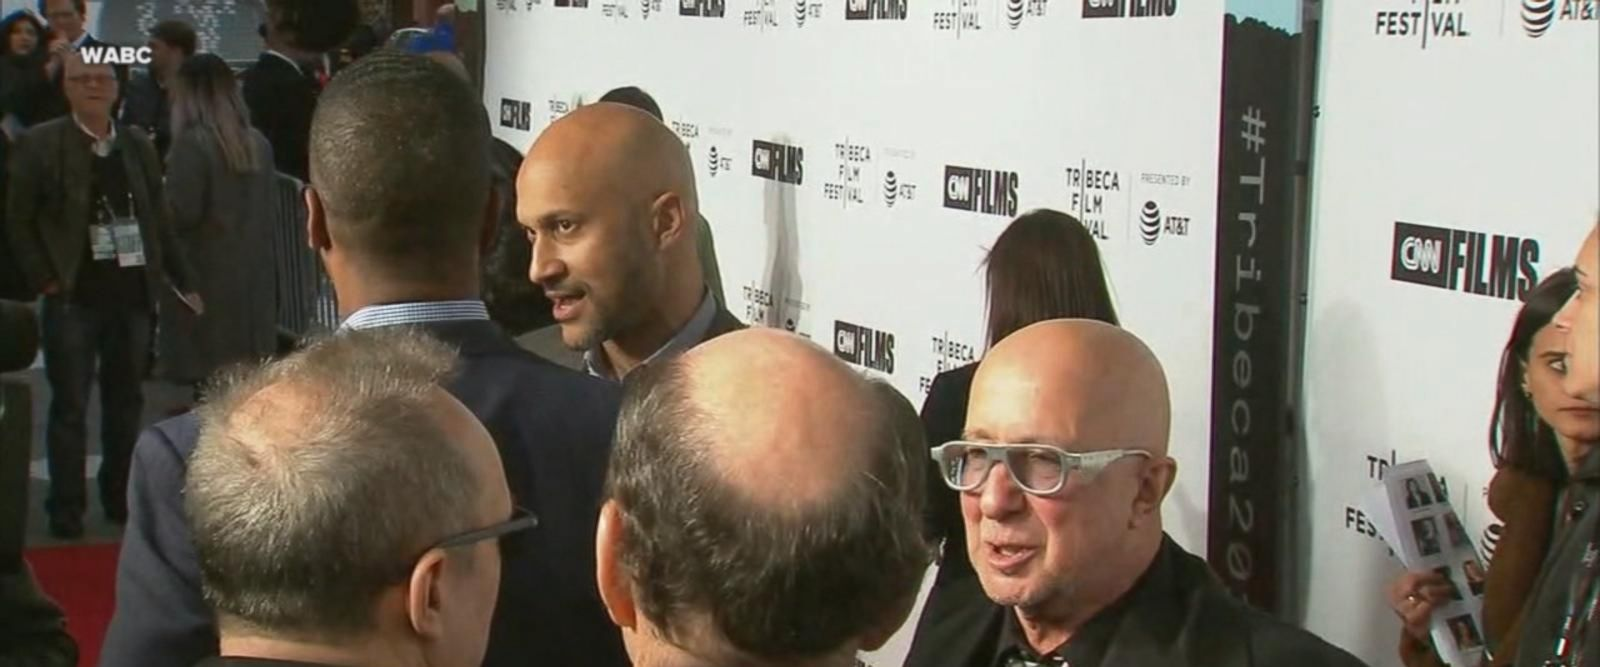 The 17th annual Tribeca Film Festival is underway, with 96 films being showcased over 12 days in New York City.